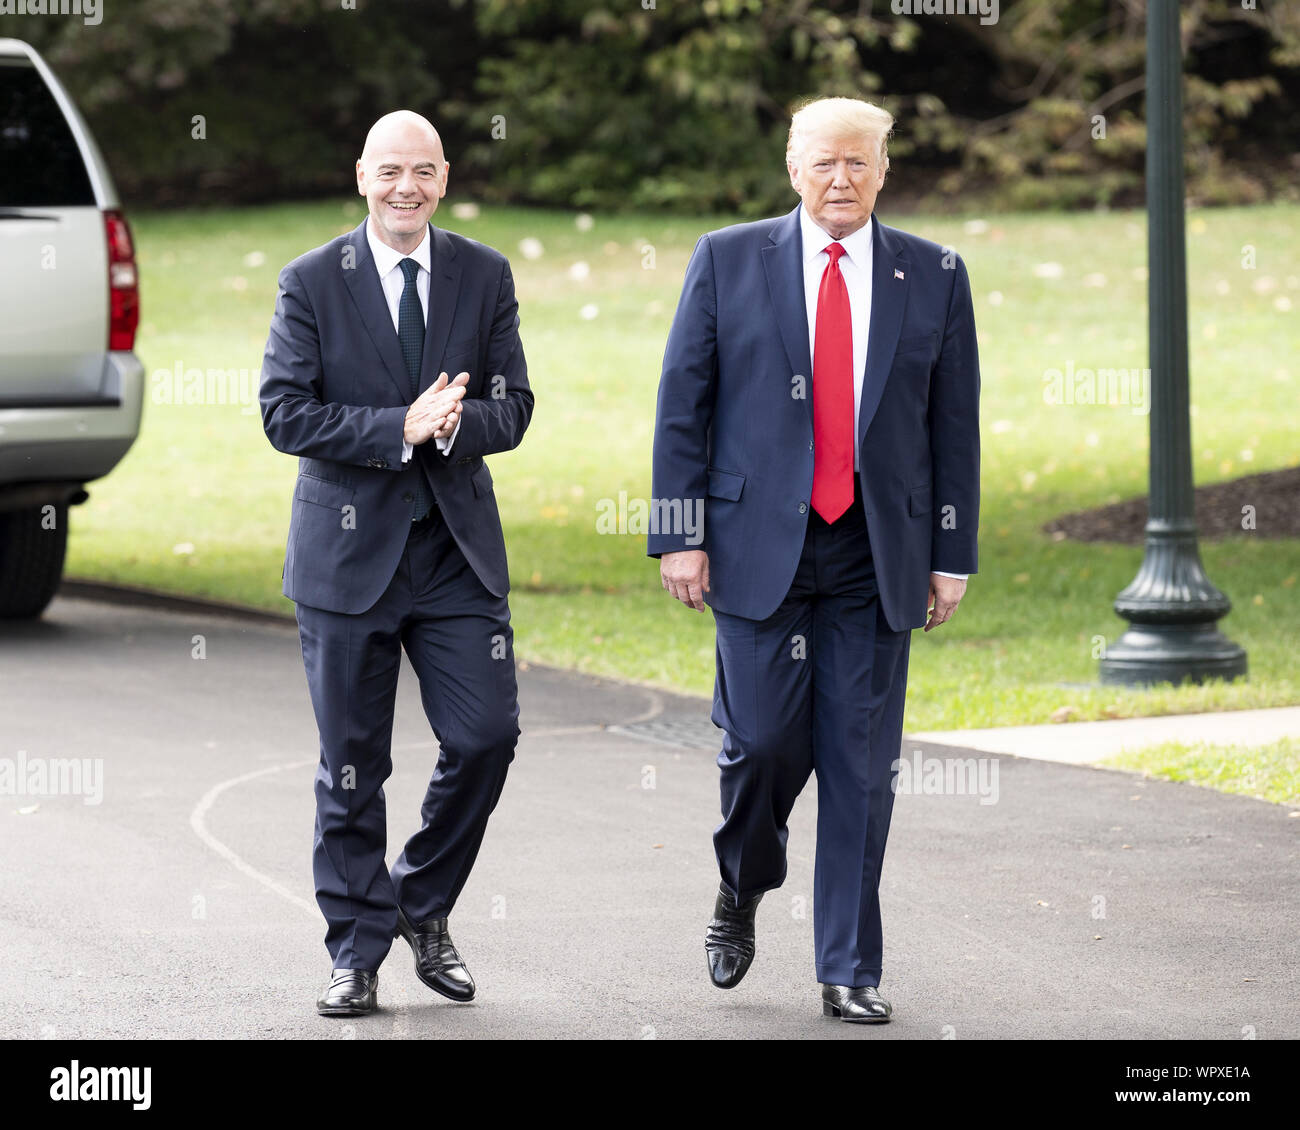 Washington, DC, USA. 9th Sep, 2019. September 9, 2019 - Washington, DC, United States: GIANNI INFANTINO, President of Federation International de Football Association (FIFA), and President DONALD TRUMP speaking with the press near the South Lawn of the White House as he leaves to go to a rally in North Carolina. Credit: Michael Brochstein/ZUMA Wire/Alamy Live News Stock Photo